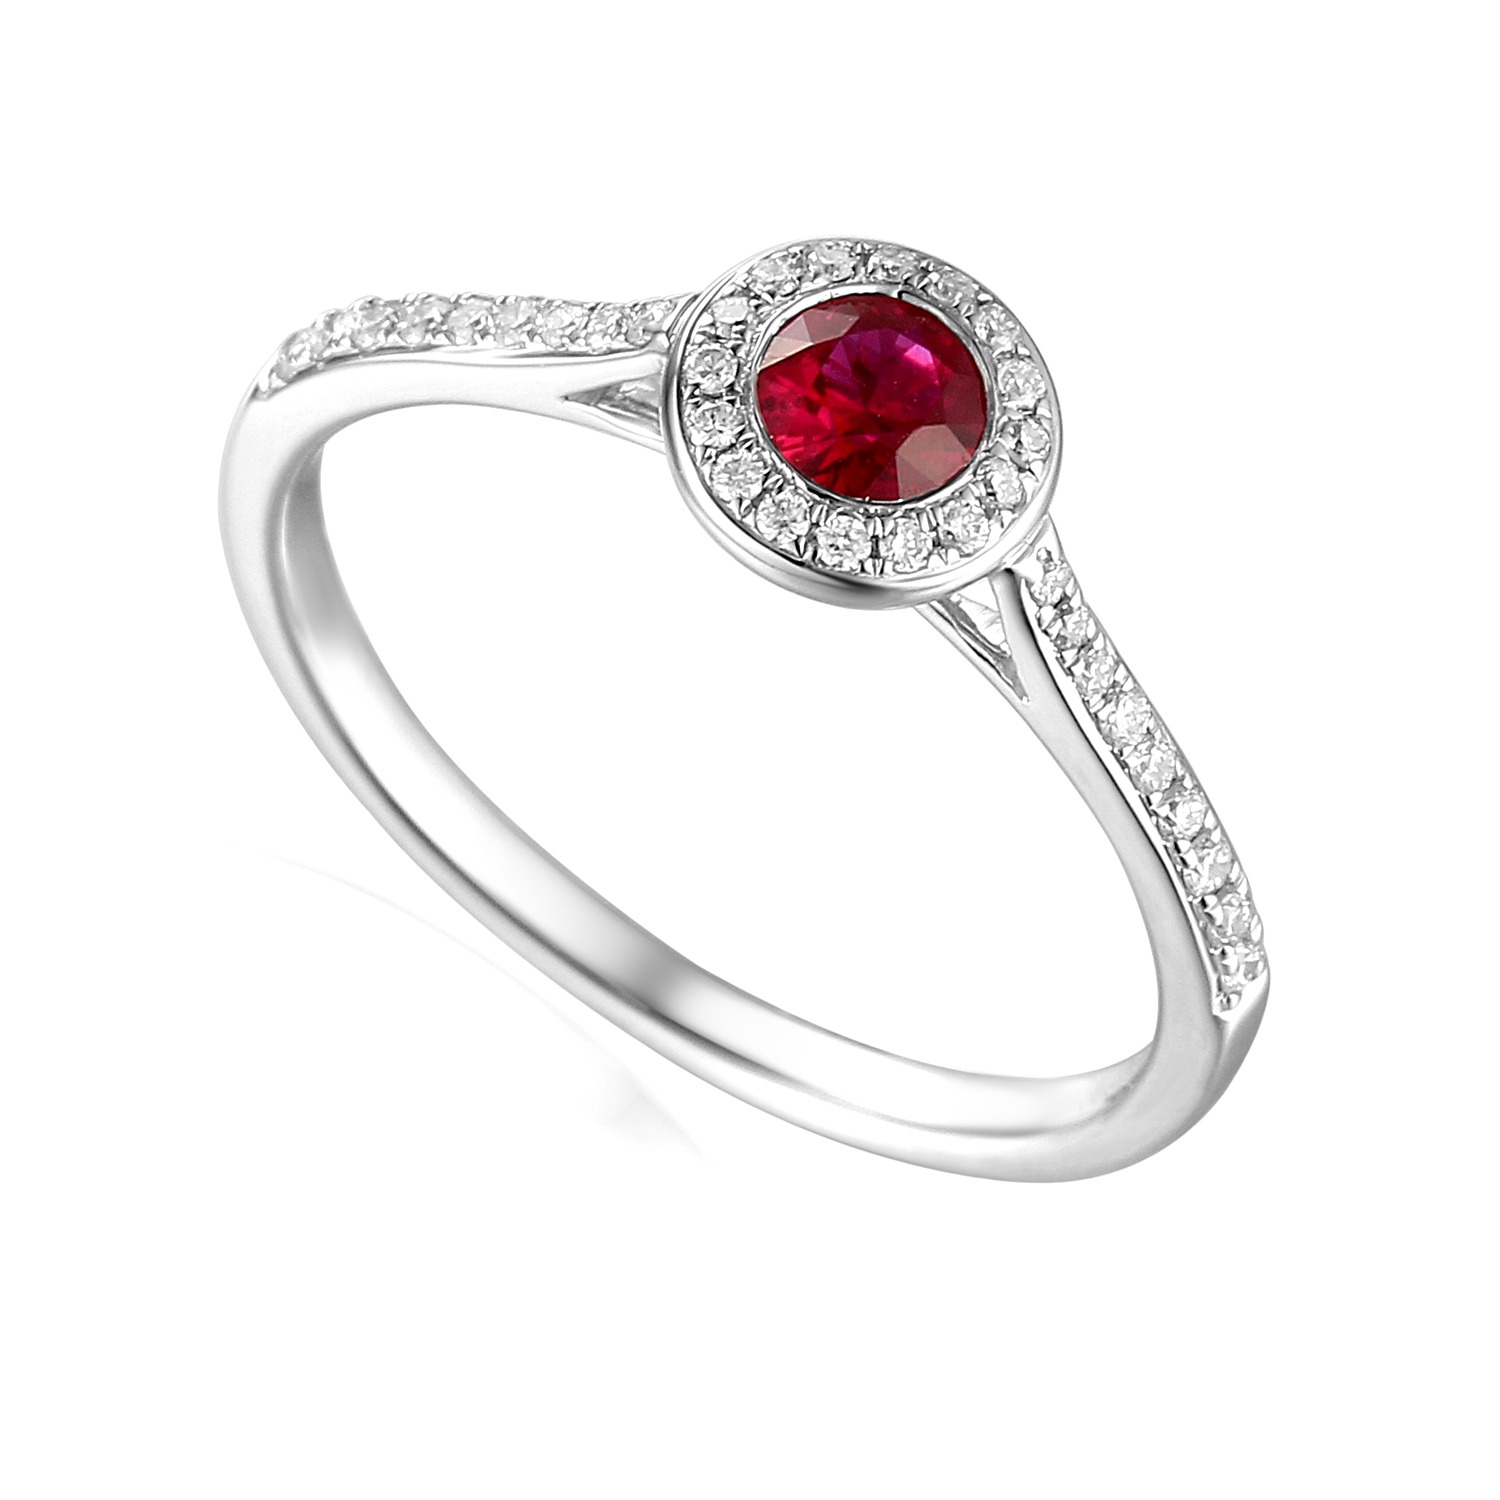 Designer platinum brilliant-cut ruby and diamond halo engagement ring